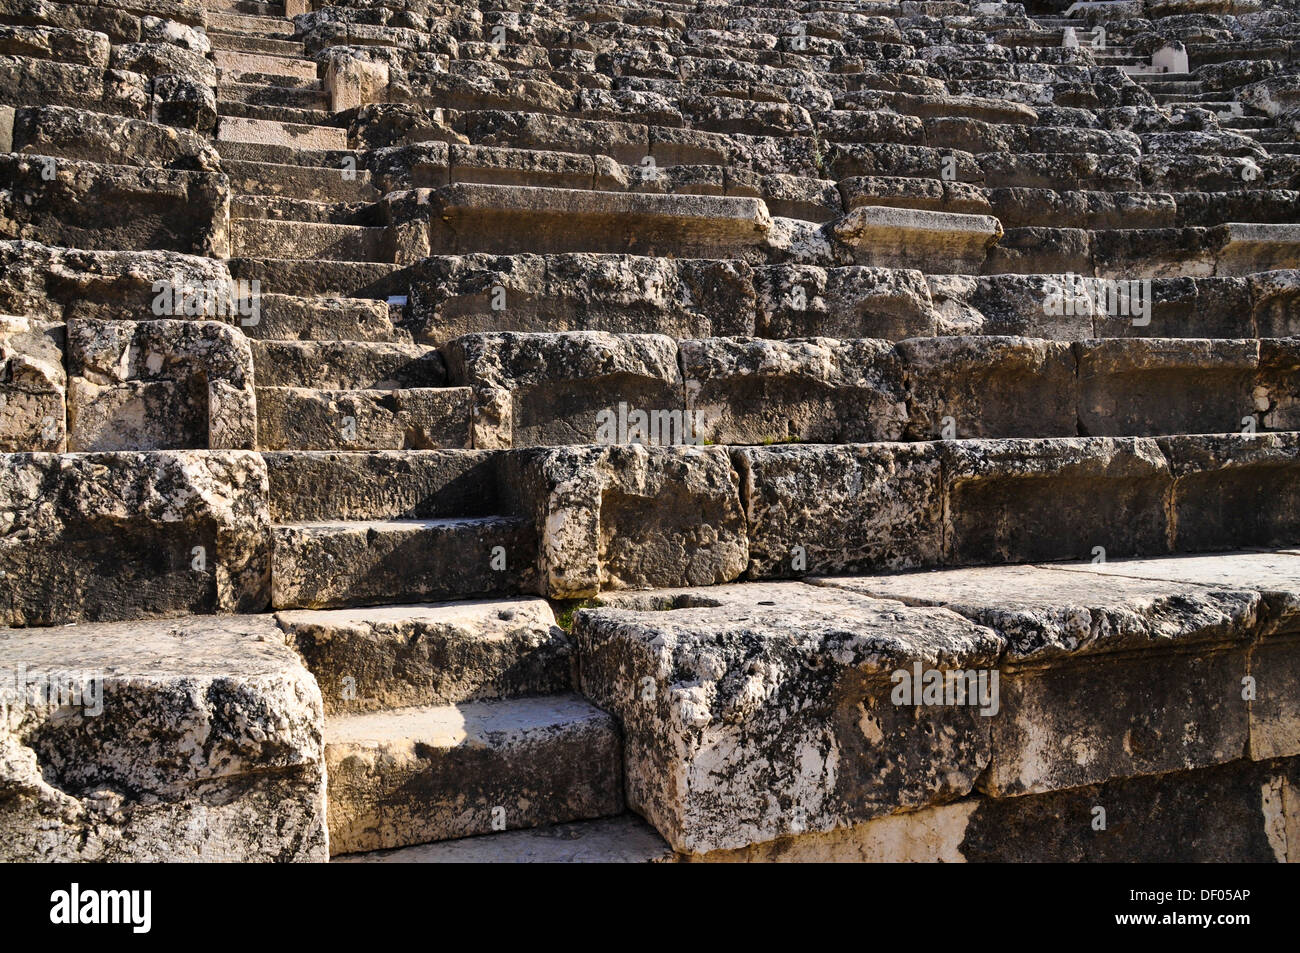 Stairs, Roman amphitheater, archaeological excavation site, Tel Beit She'an or Tell Beth-Shean, Israel, Middle East - Stock Image